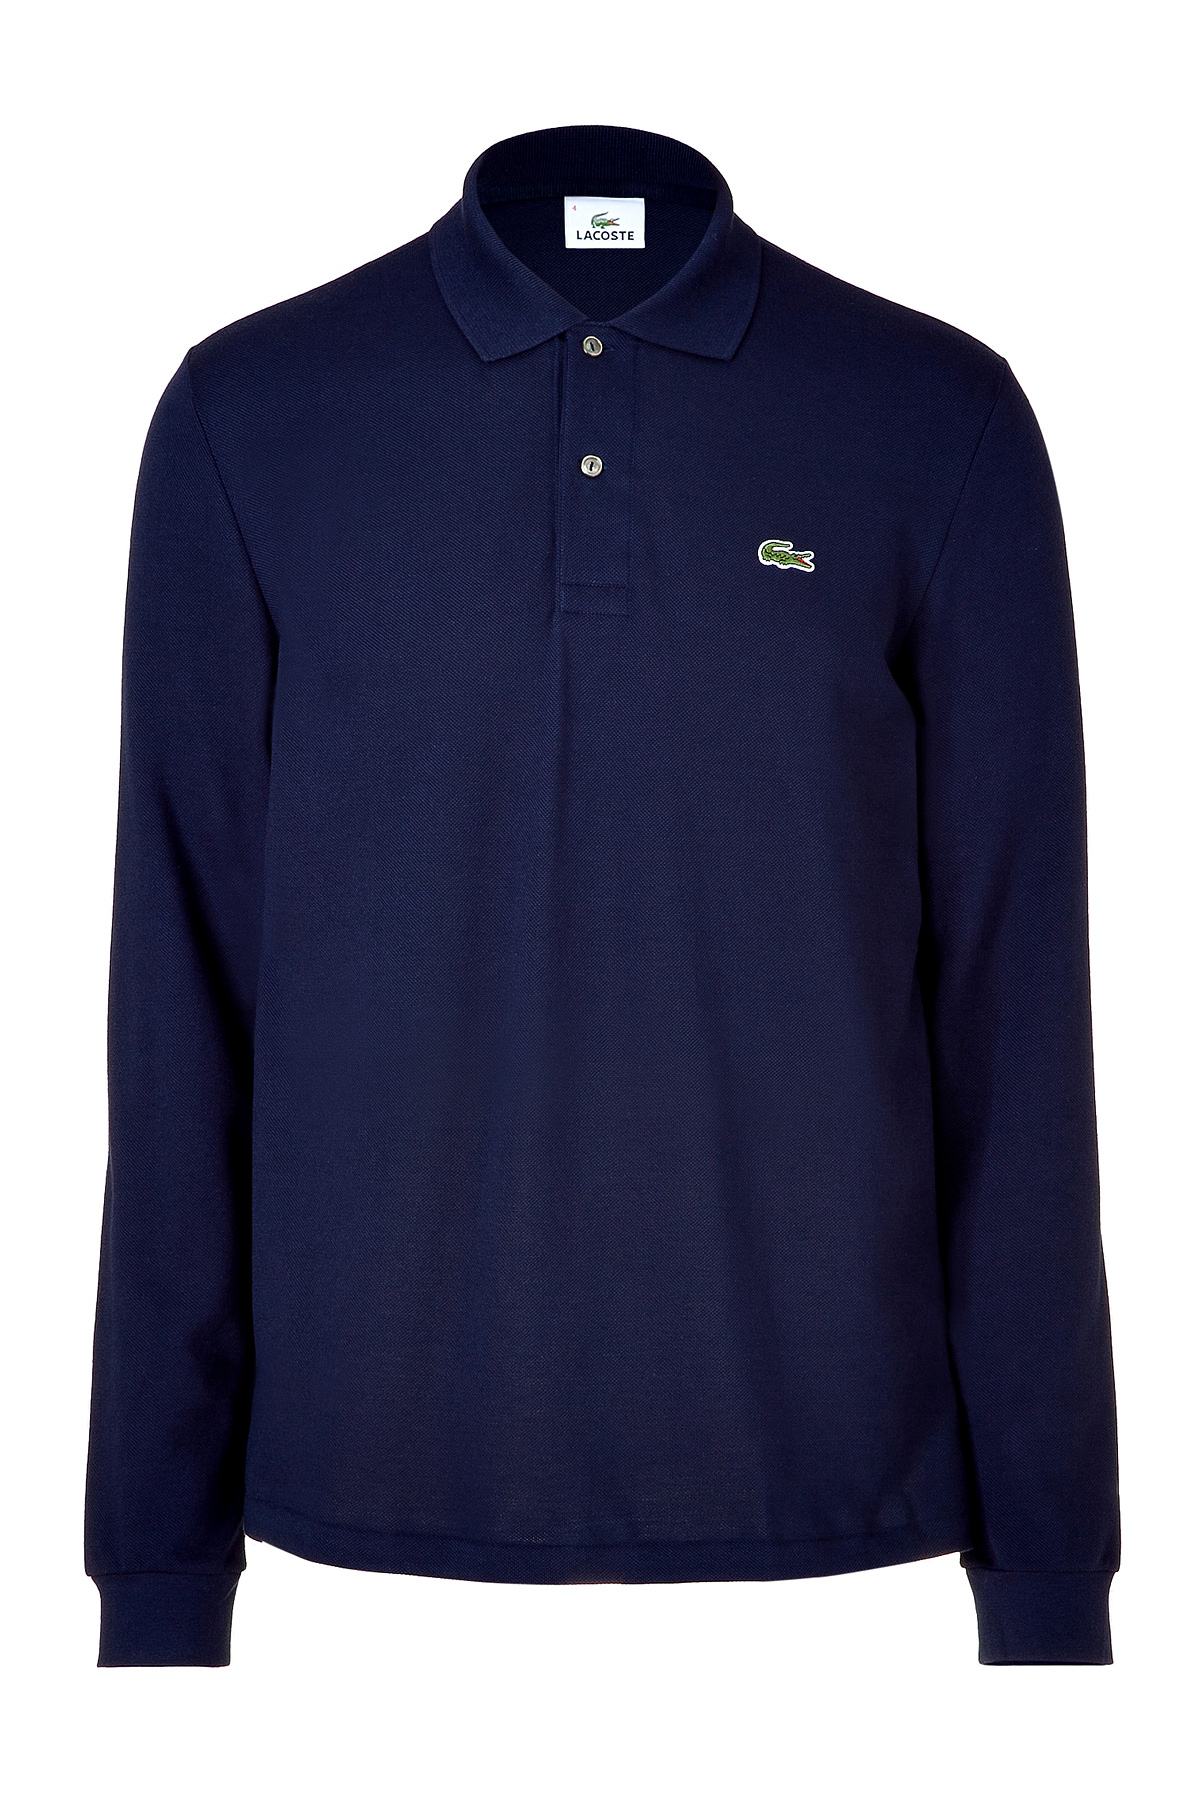 Lacoste Marine Long Sleeve Polo Shirt In Blue For Men Lyst